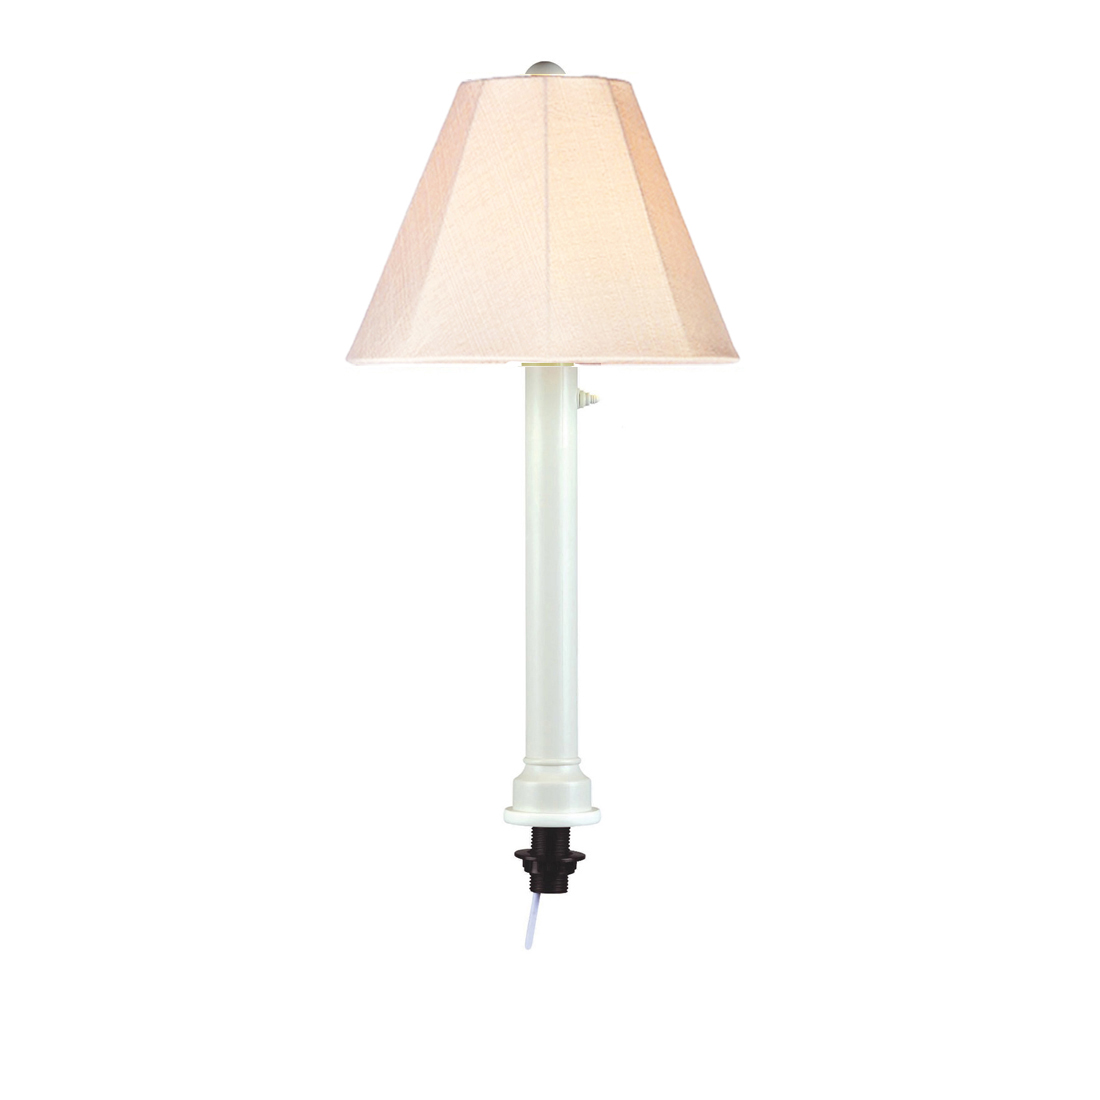 San Juan - Portable Weatherproof Umbrella Table Lamp 28